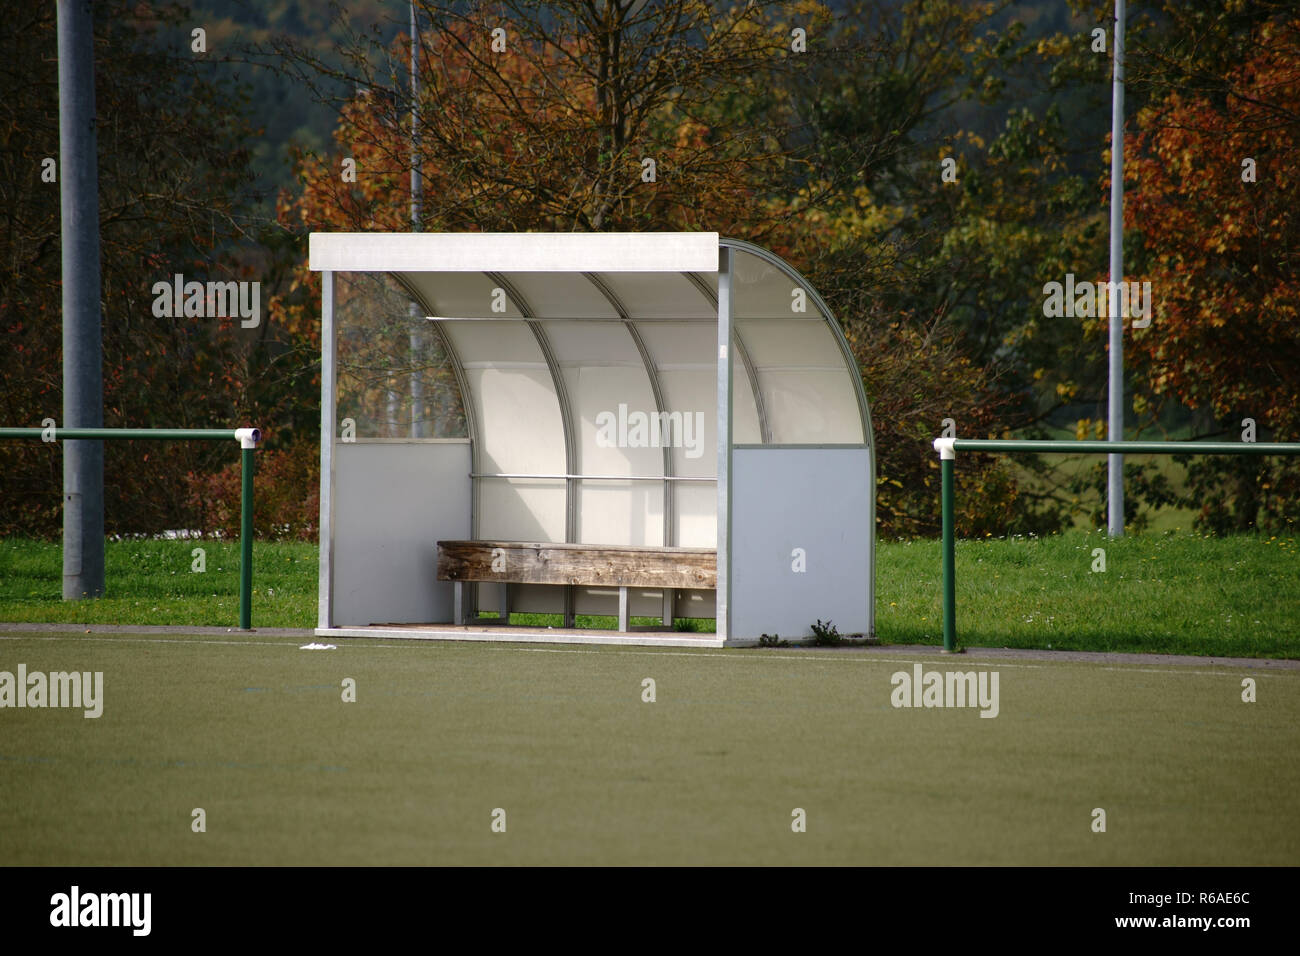 Coach Bench At Soccer Field - Stock Image